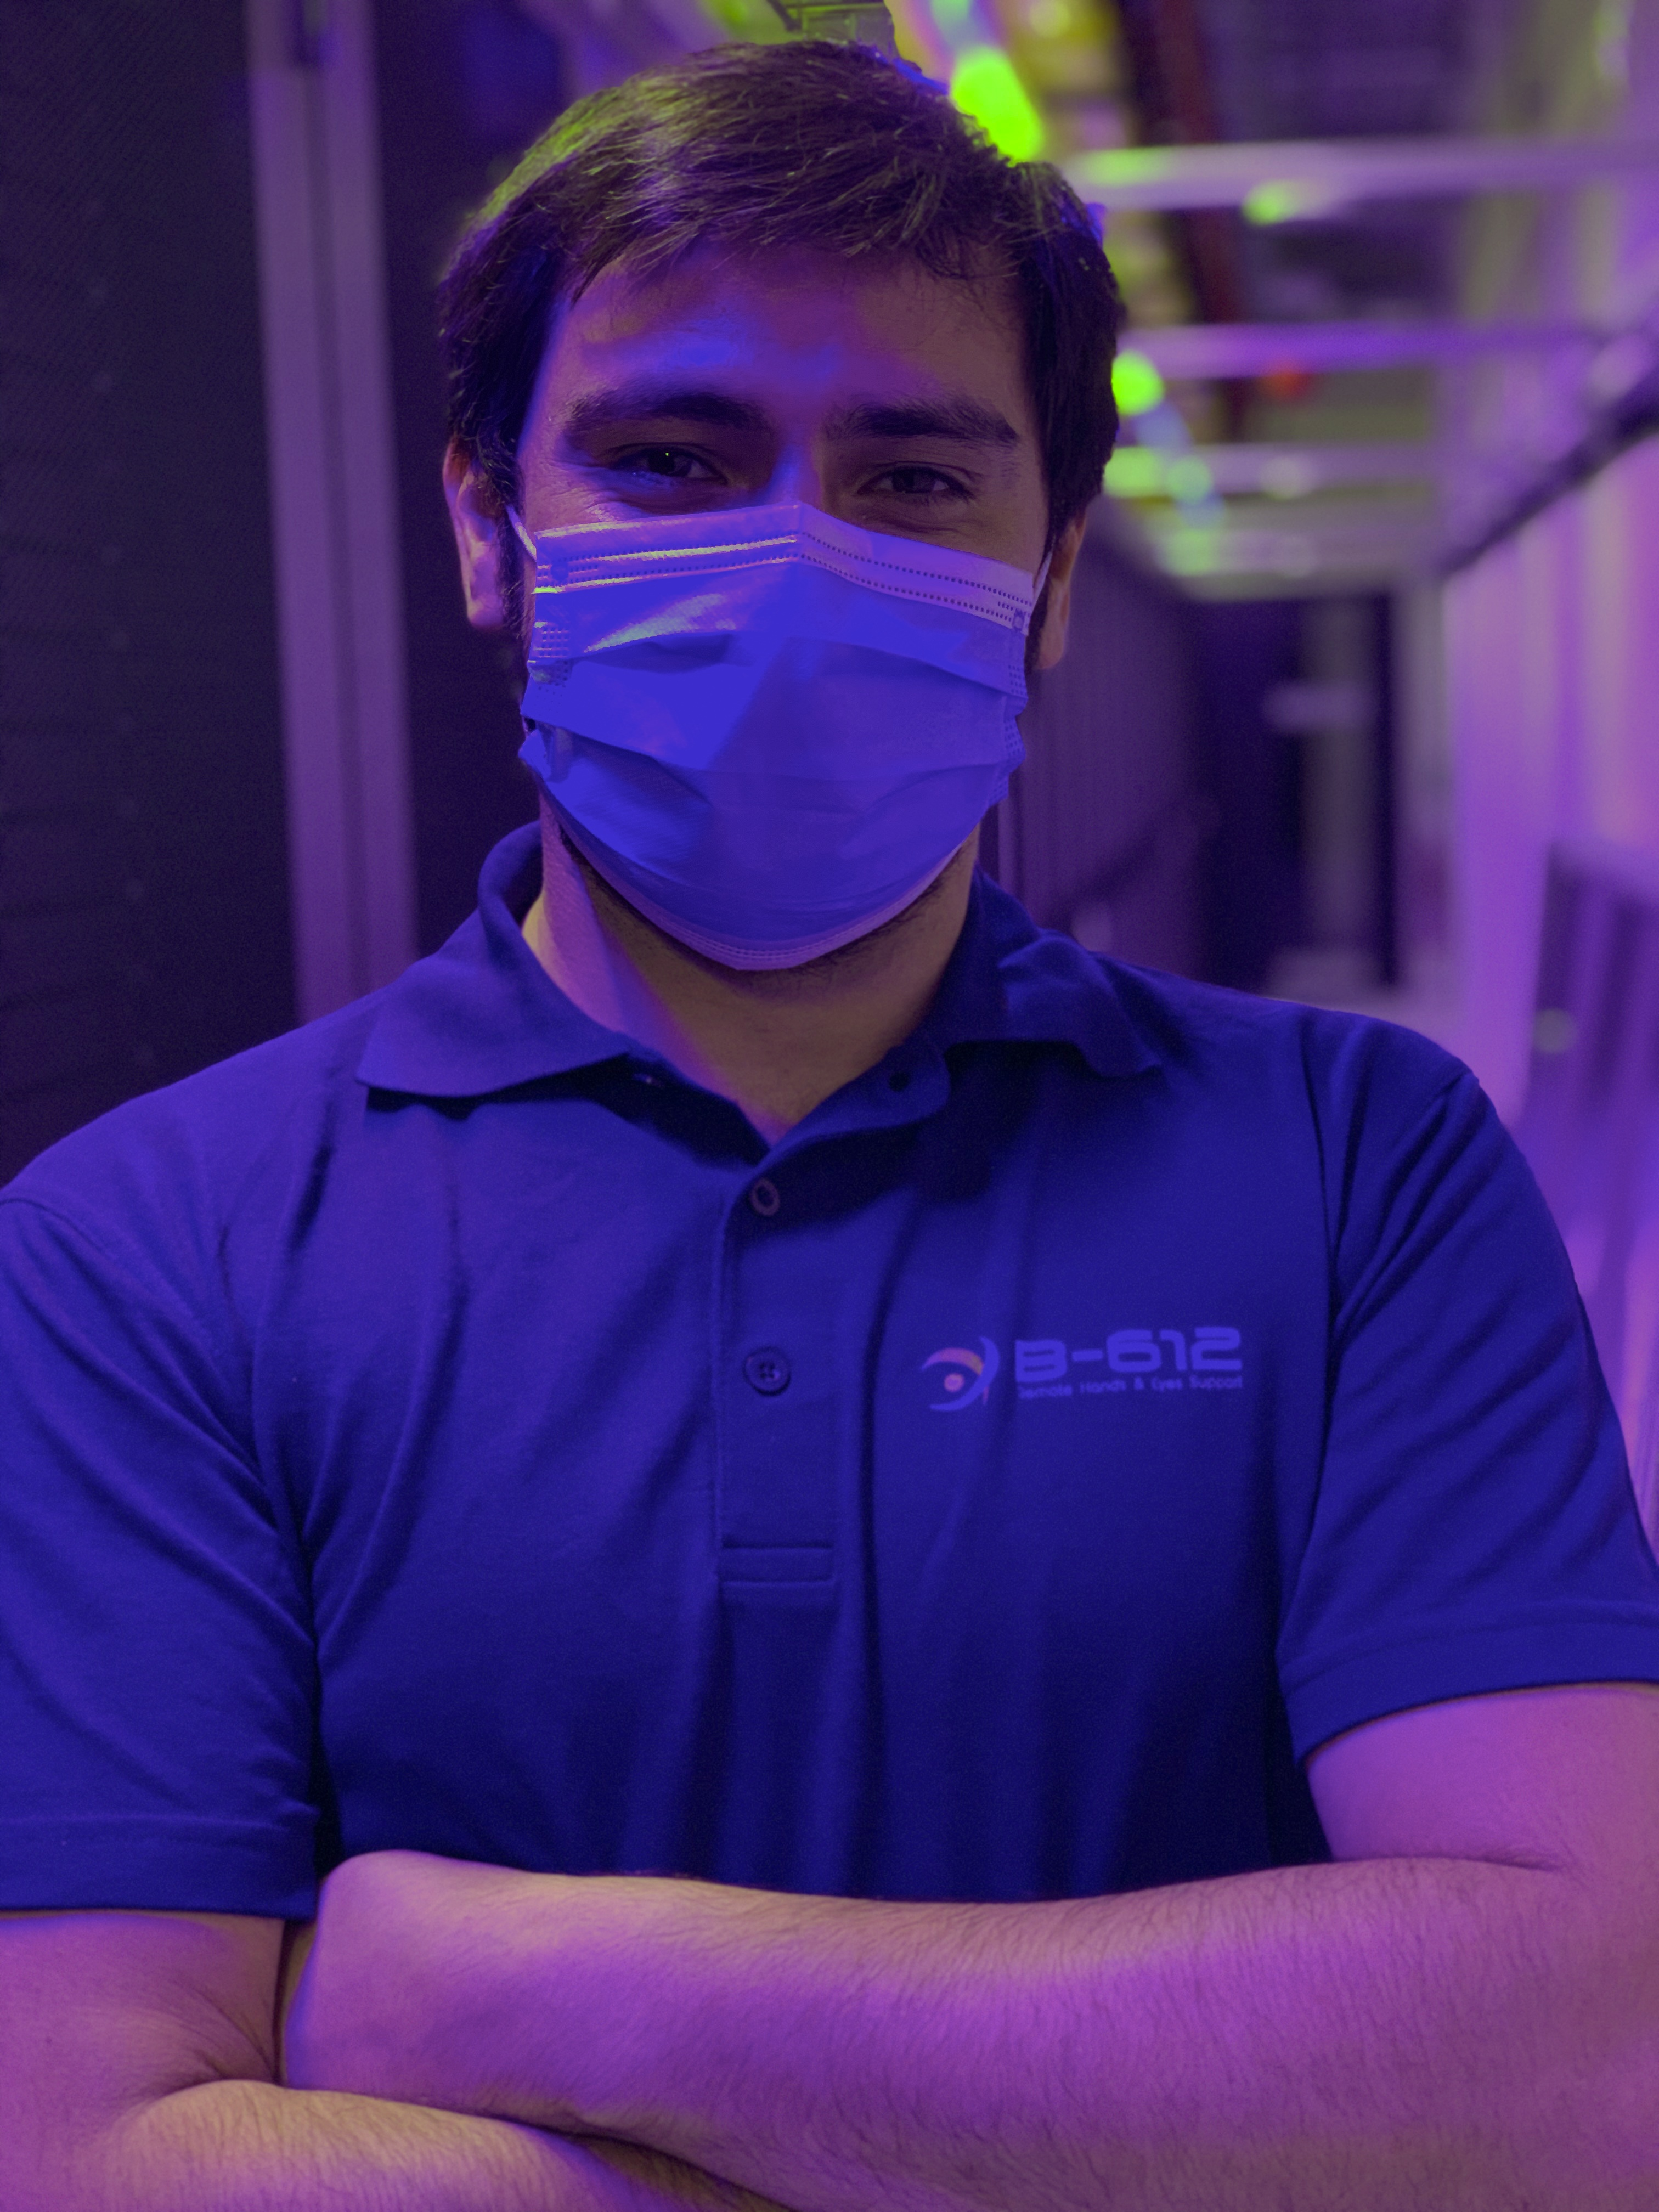 Engineer wearing Covid mask in a data center